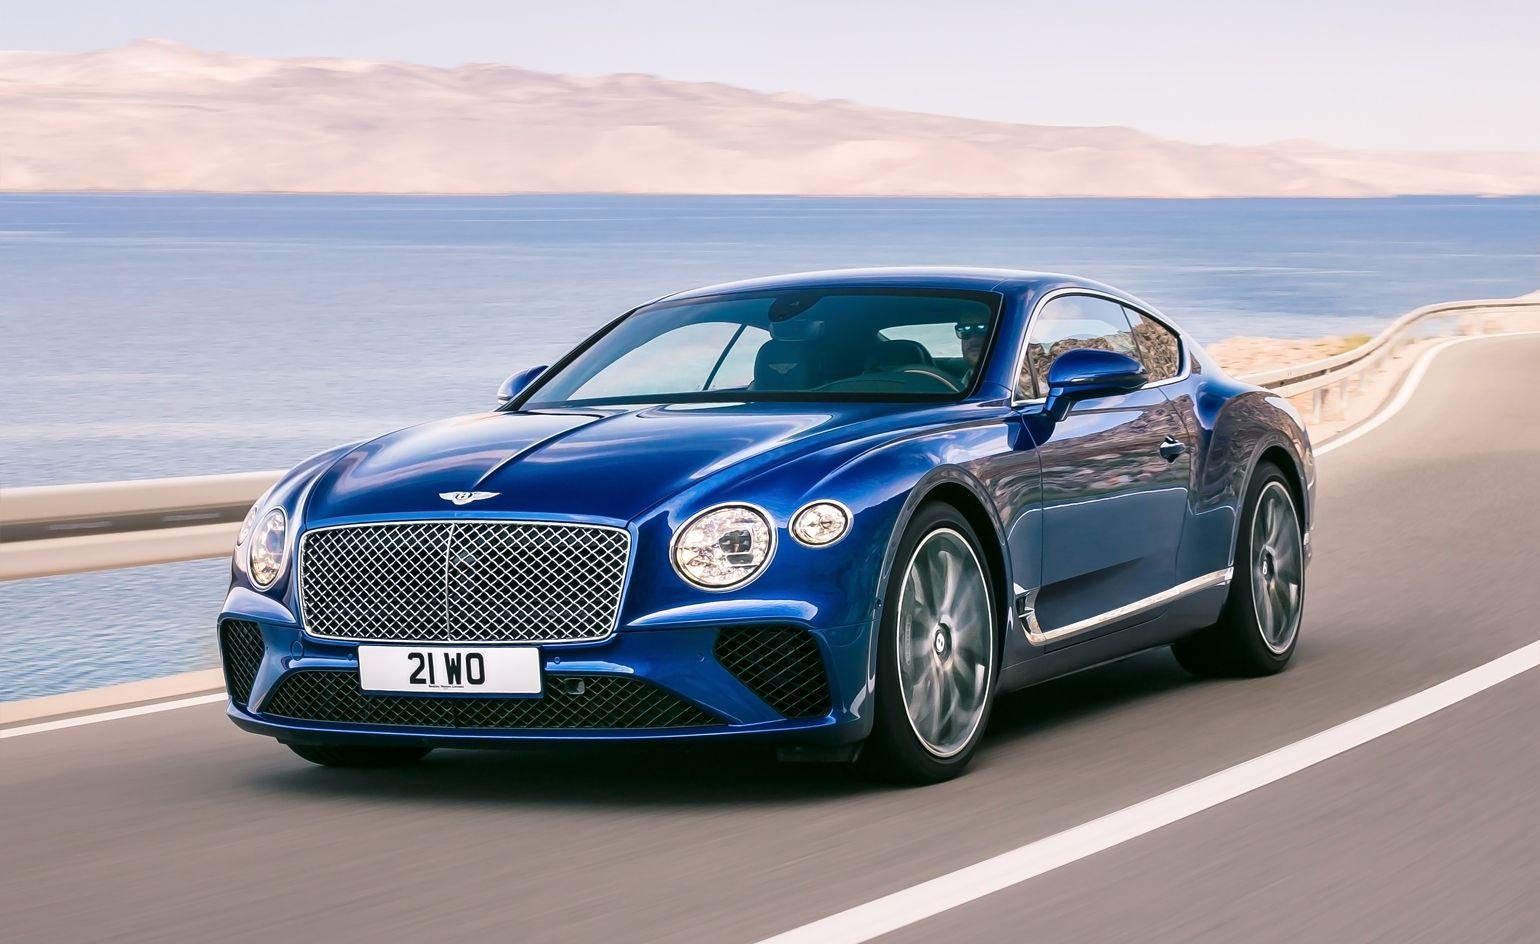 Bentley's new Continental GT is a complete re-imagining | Wallpaper*